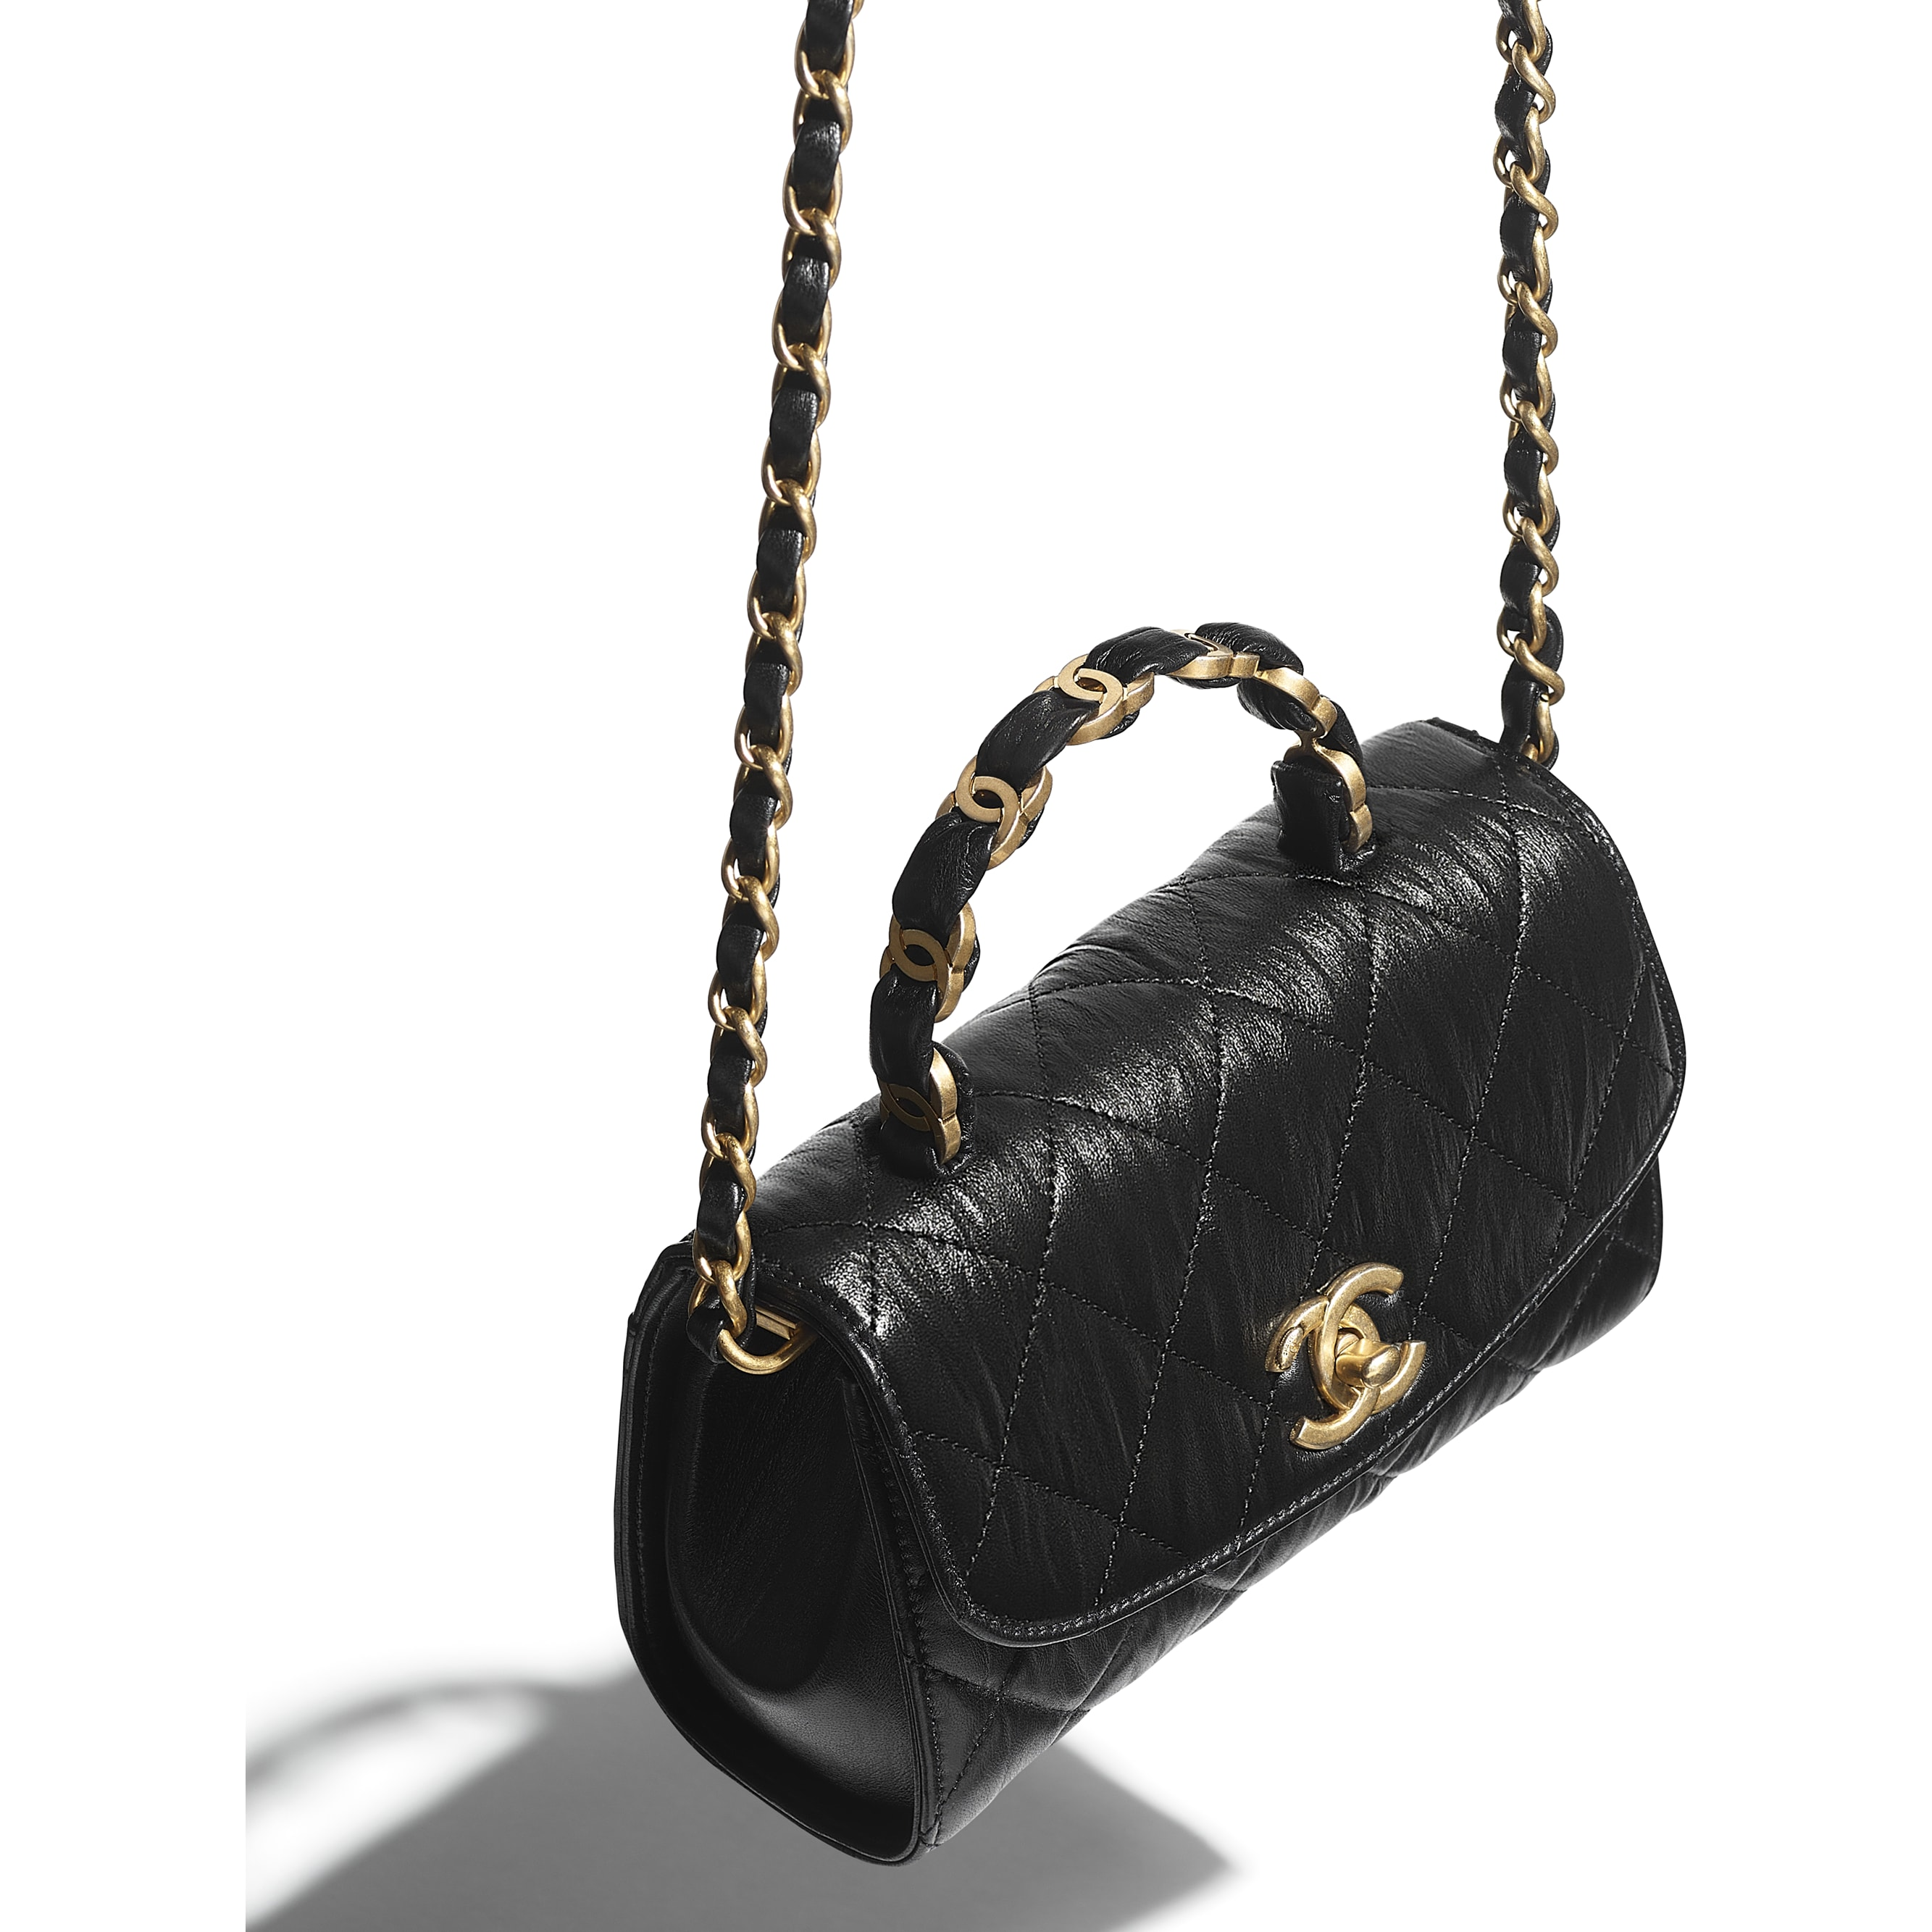 Mini Flap Bag with Top Handle - Black - Crumpled Lambskin & Gold-Tone Metal - CHANEL - Other view - see standard sized version